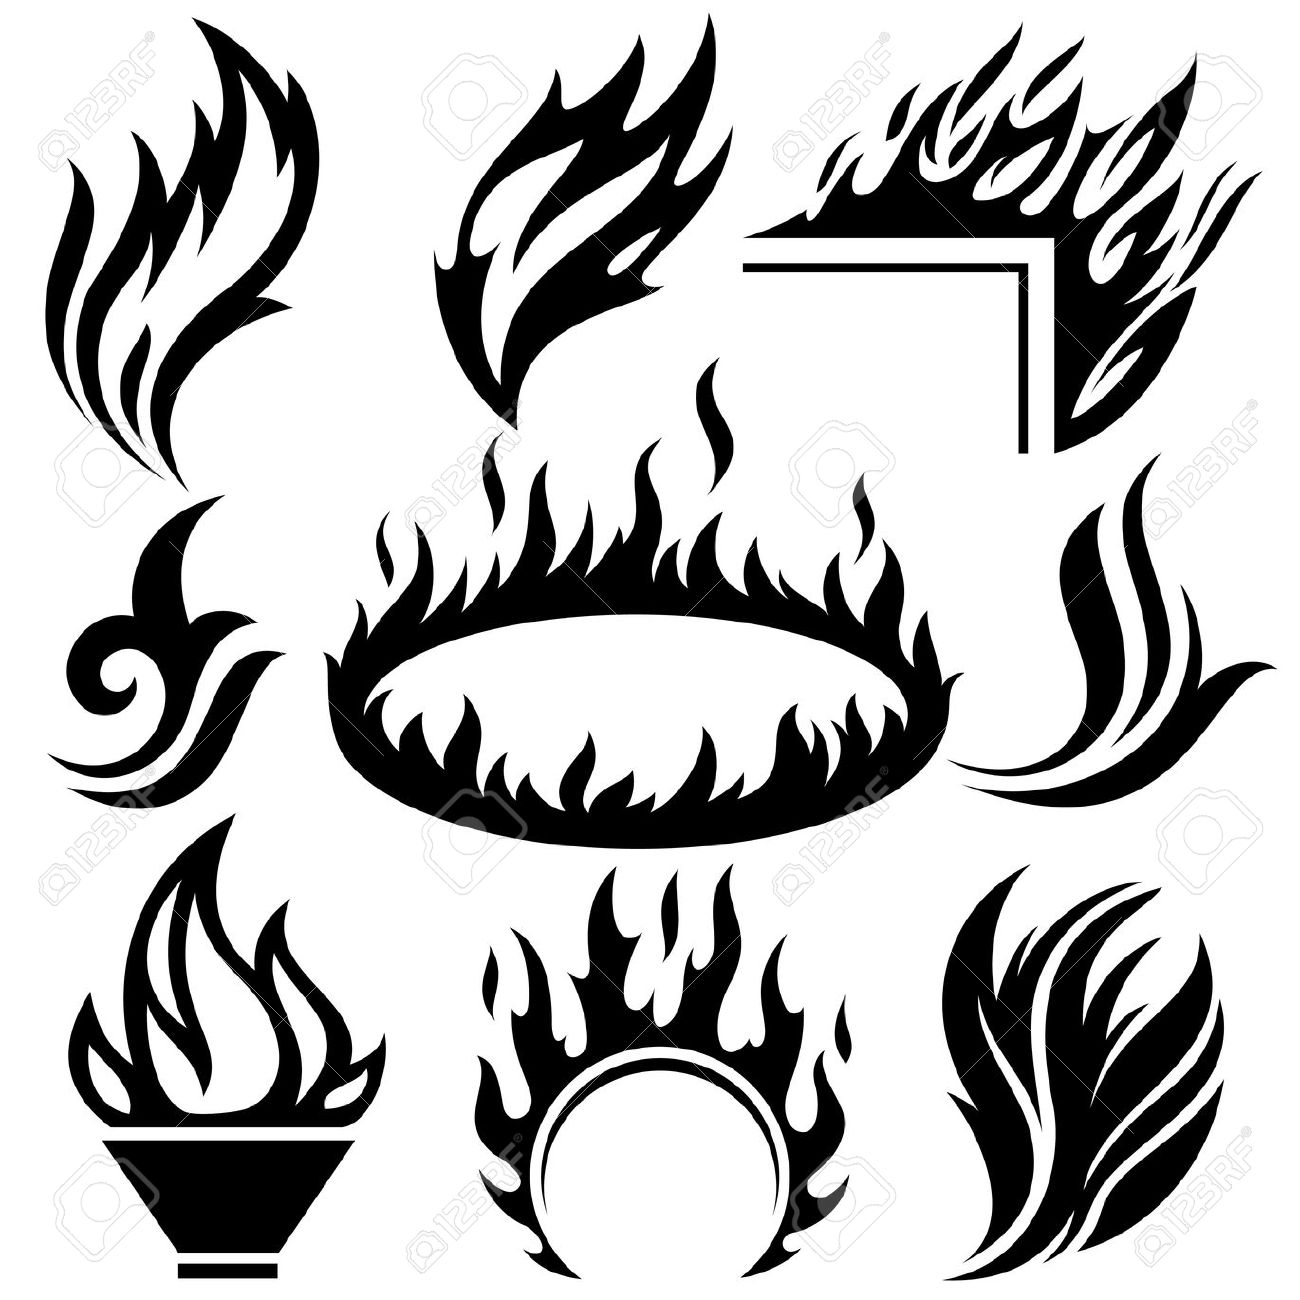 Flames Outline Drawing At Getdrawings